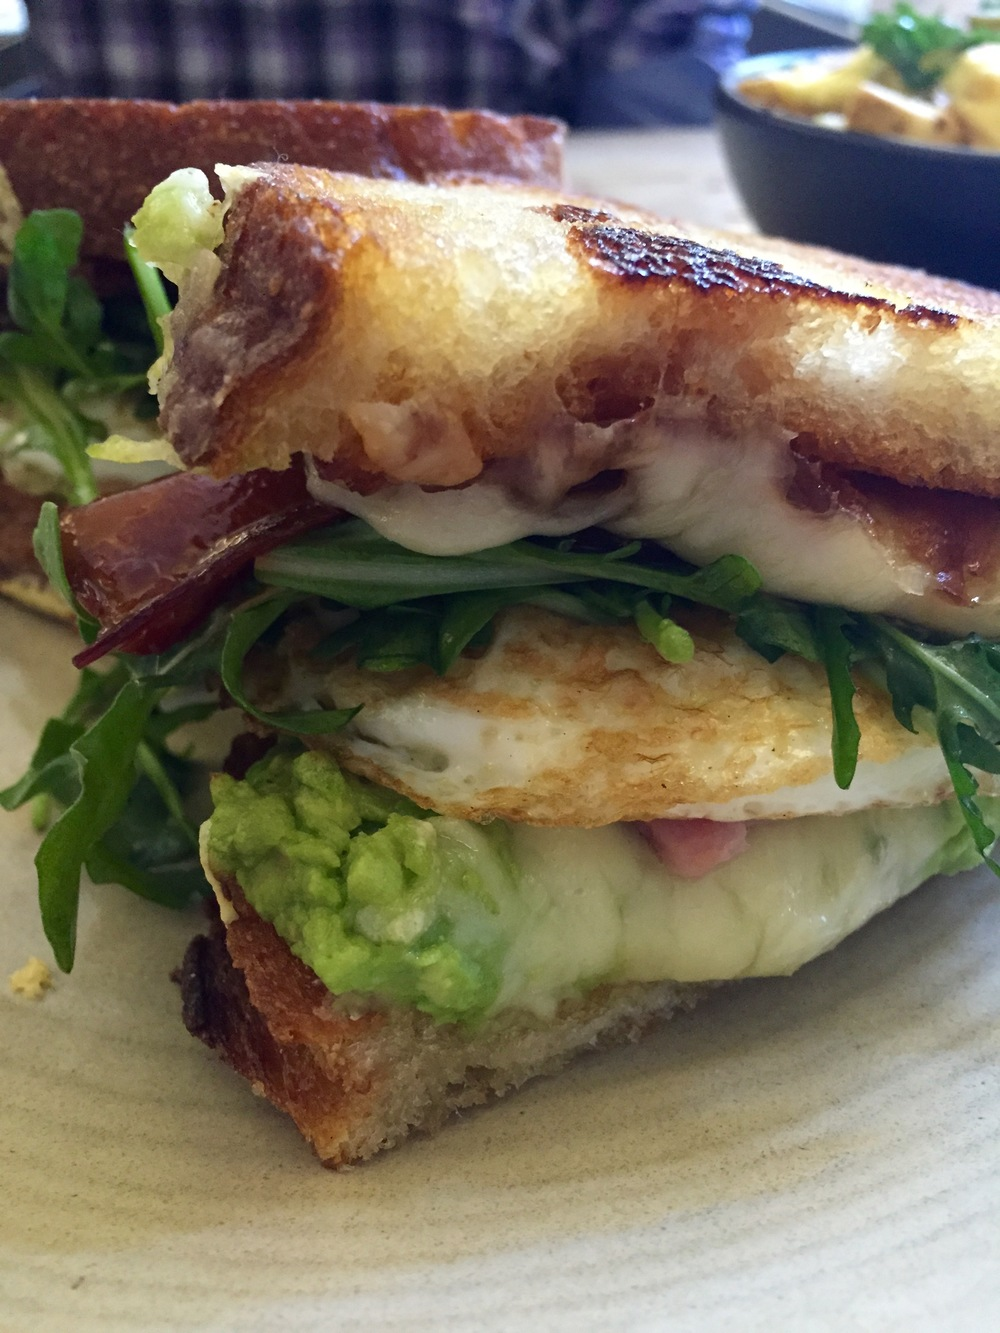 Littlefork Melt with Maple Bacon, ham, onion marmalade, avocado, eggs over-easy, cheddar, and Jarlsberg.